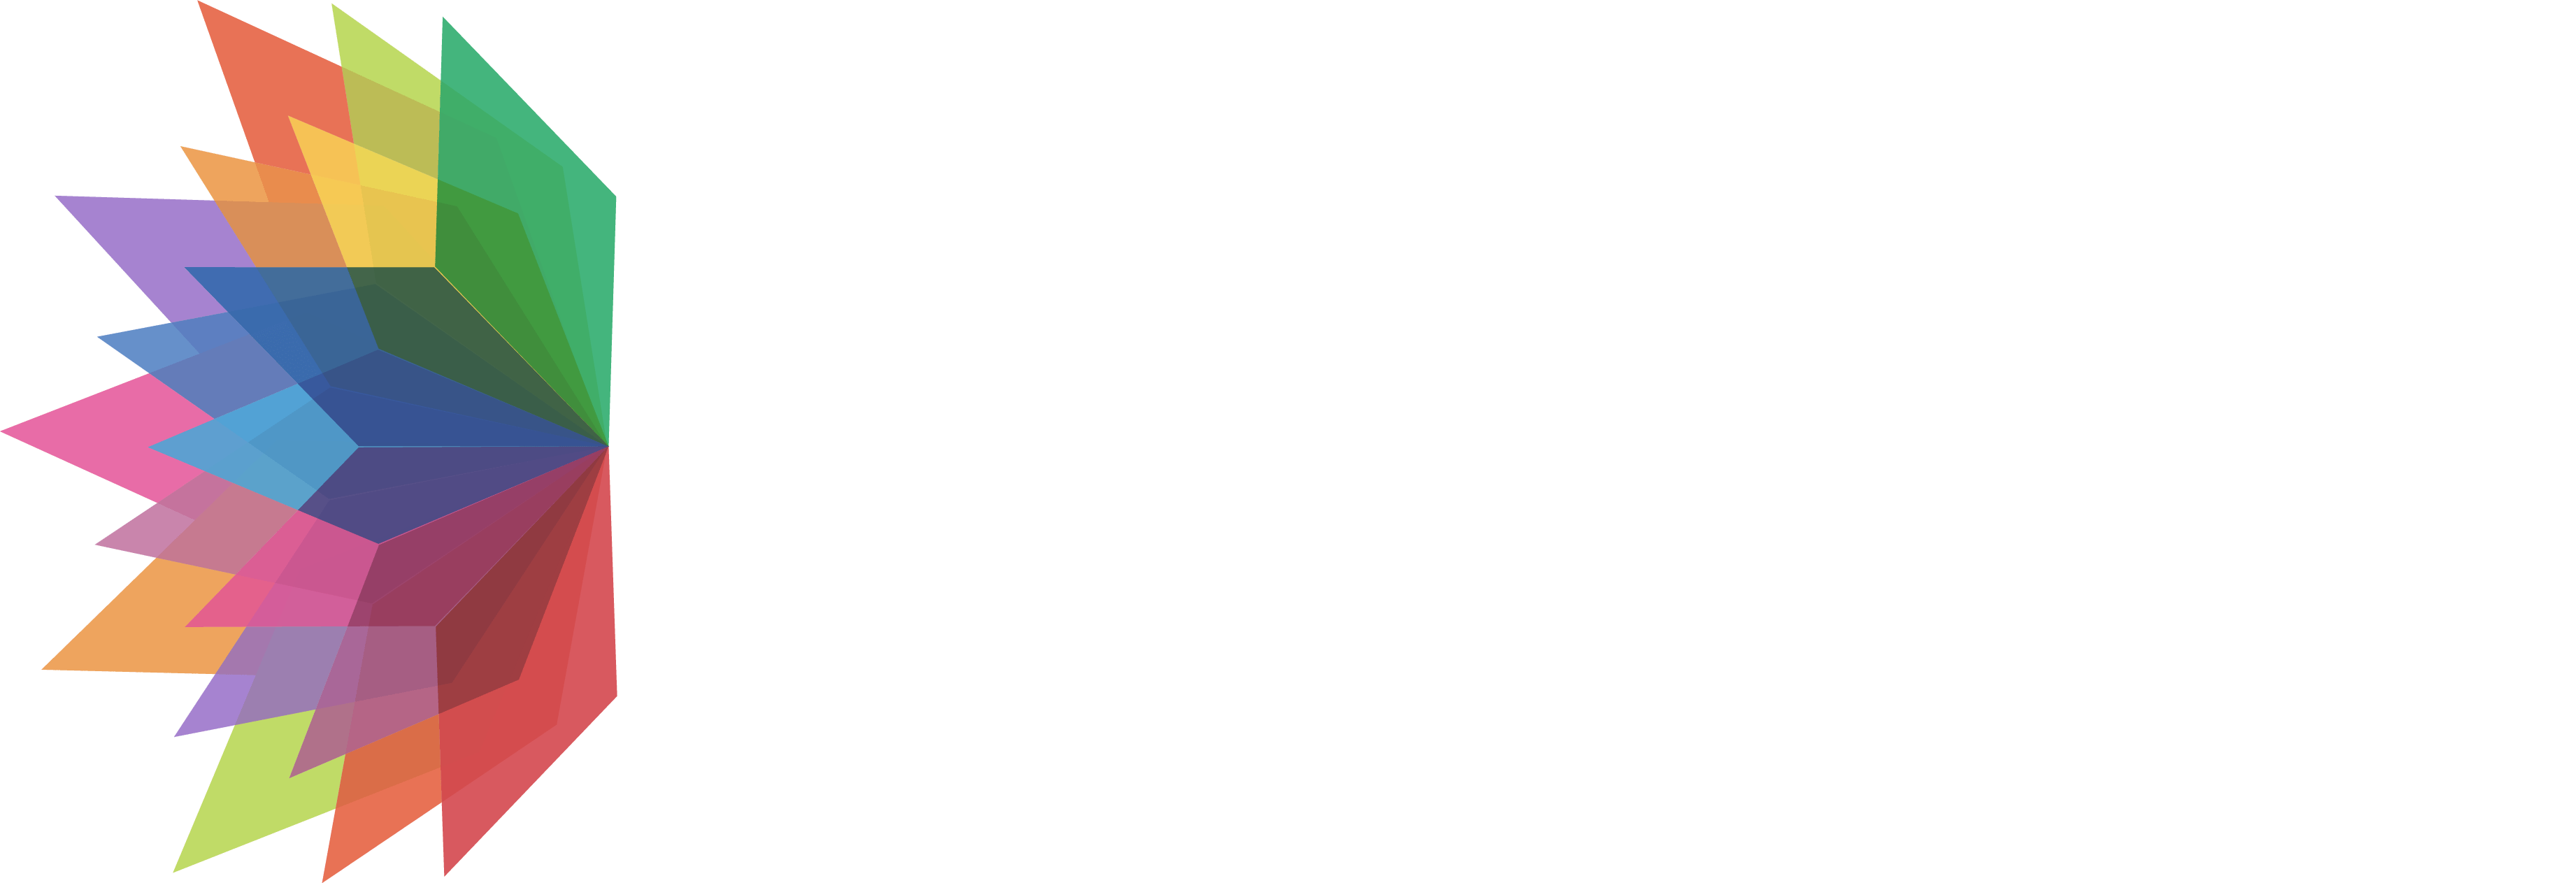 Inspire Hospice and Palliative Care, Atlanta